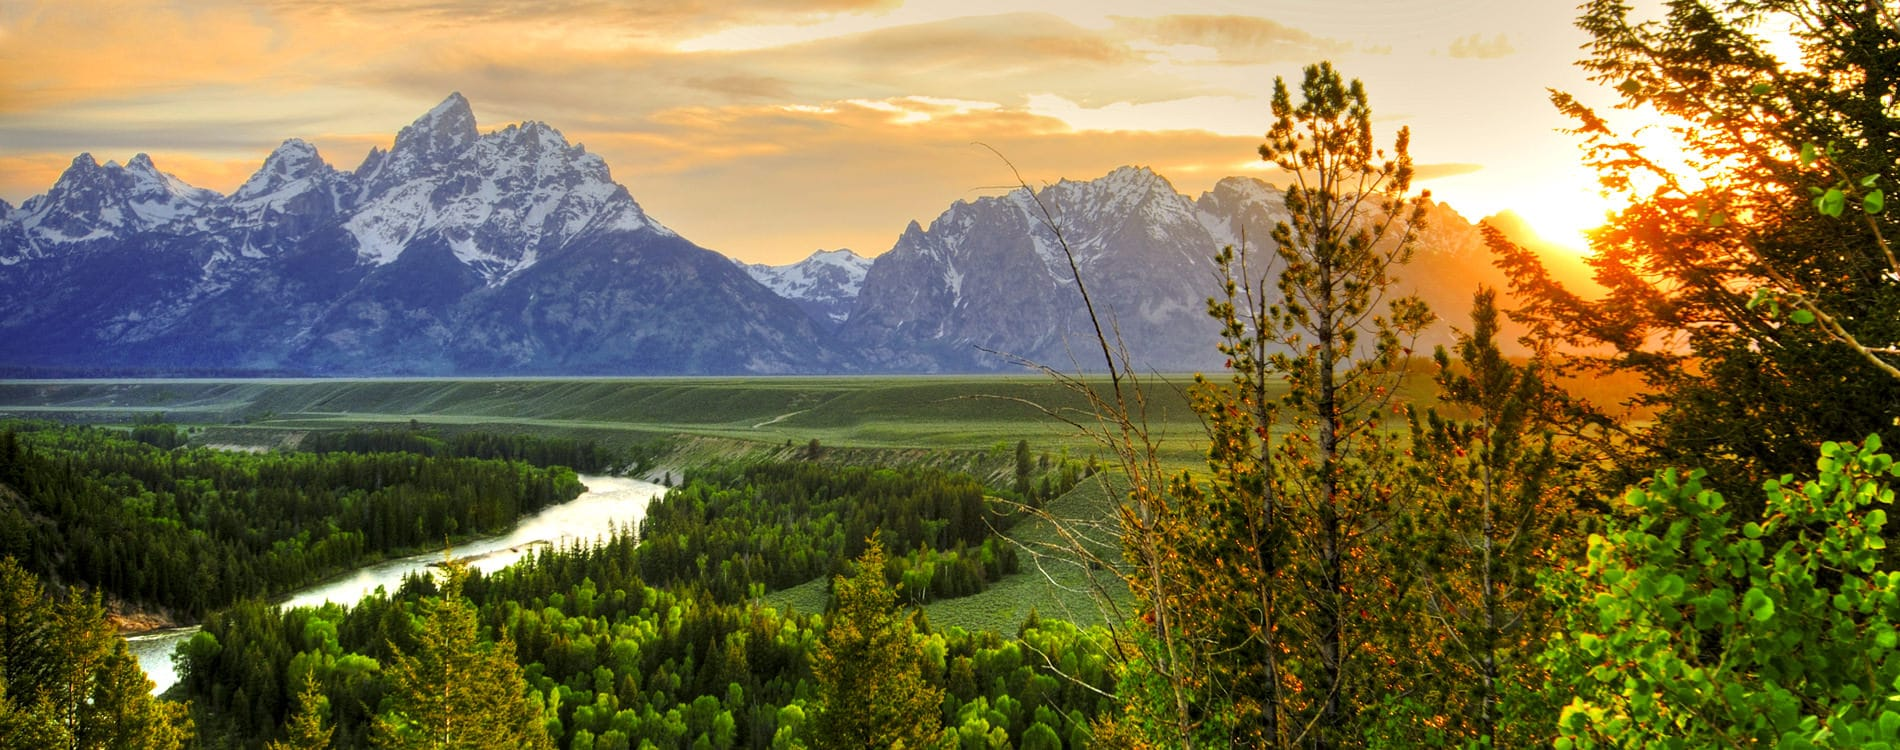 Sunset over Grand Tetons from Snake River Overlook